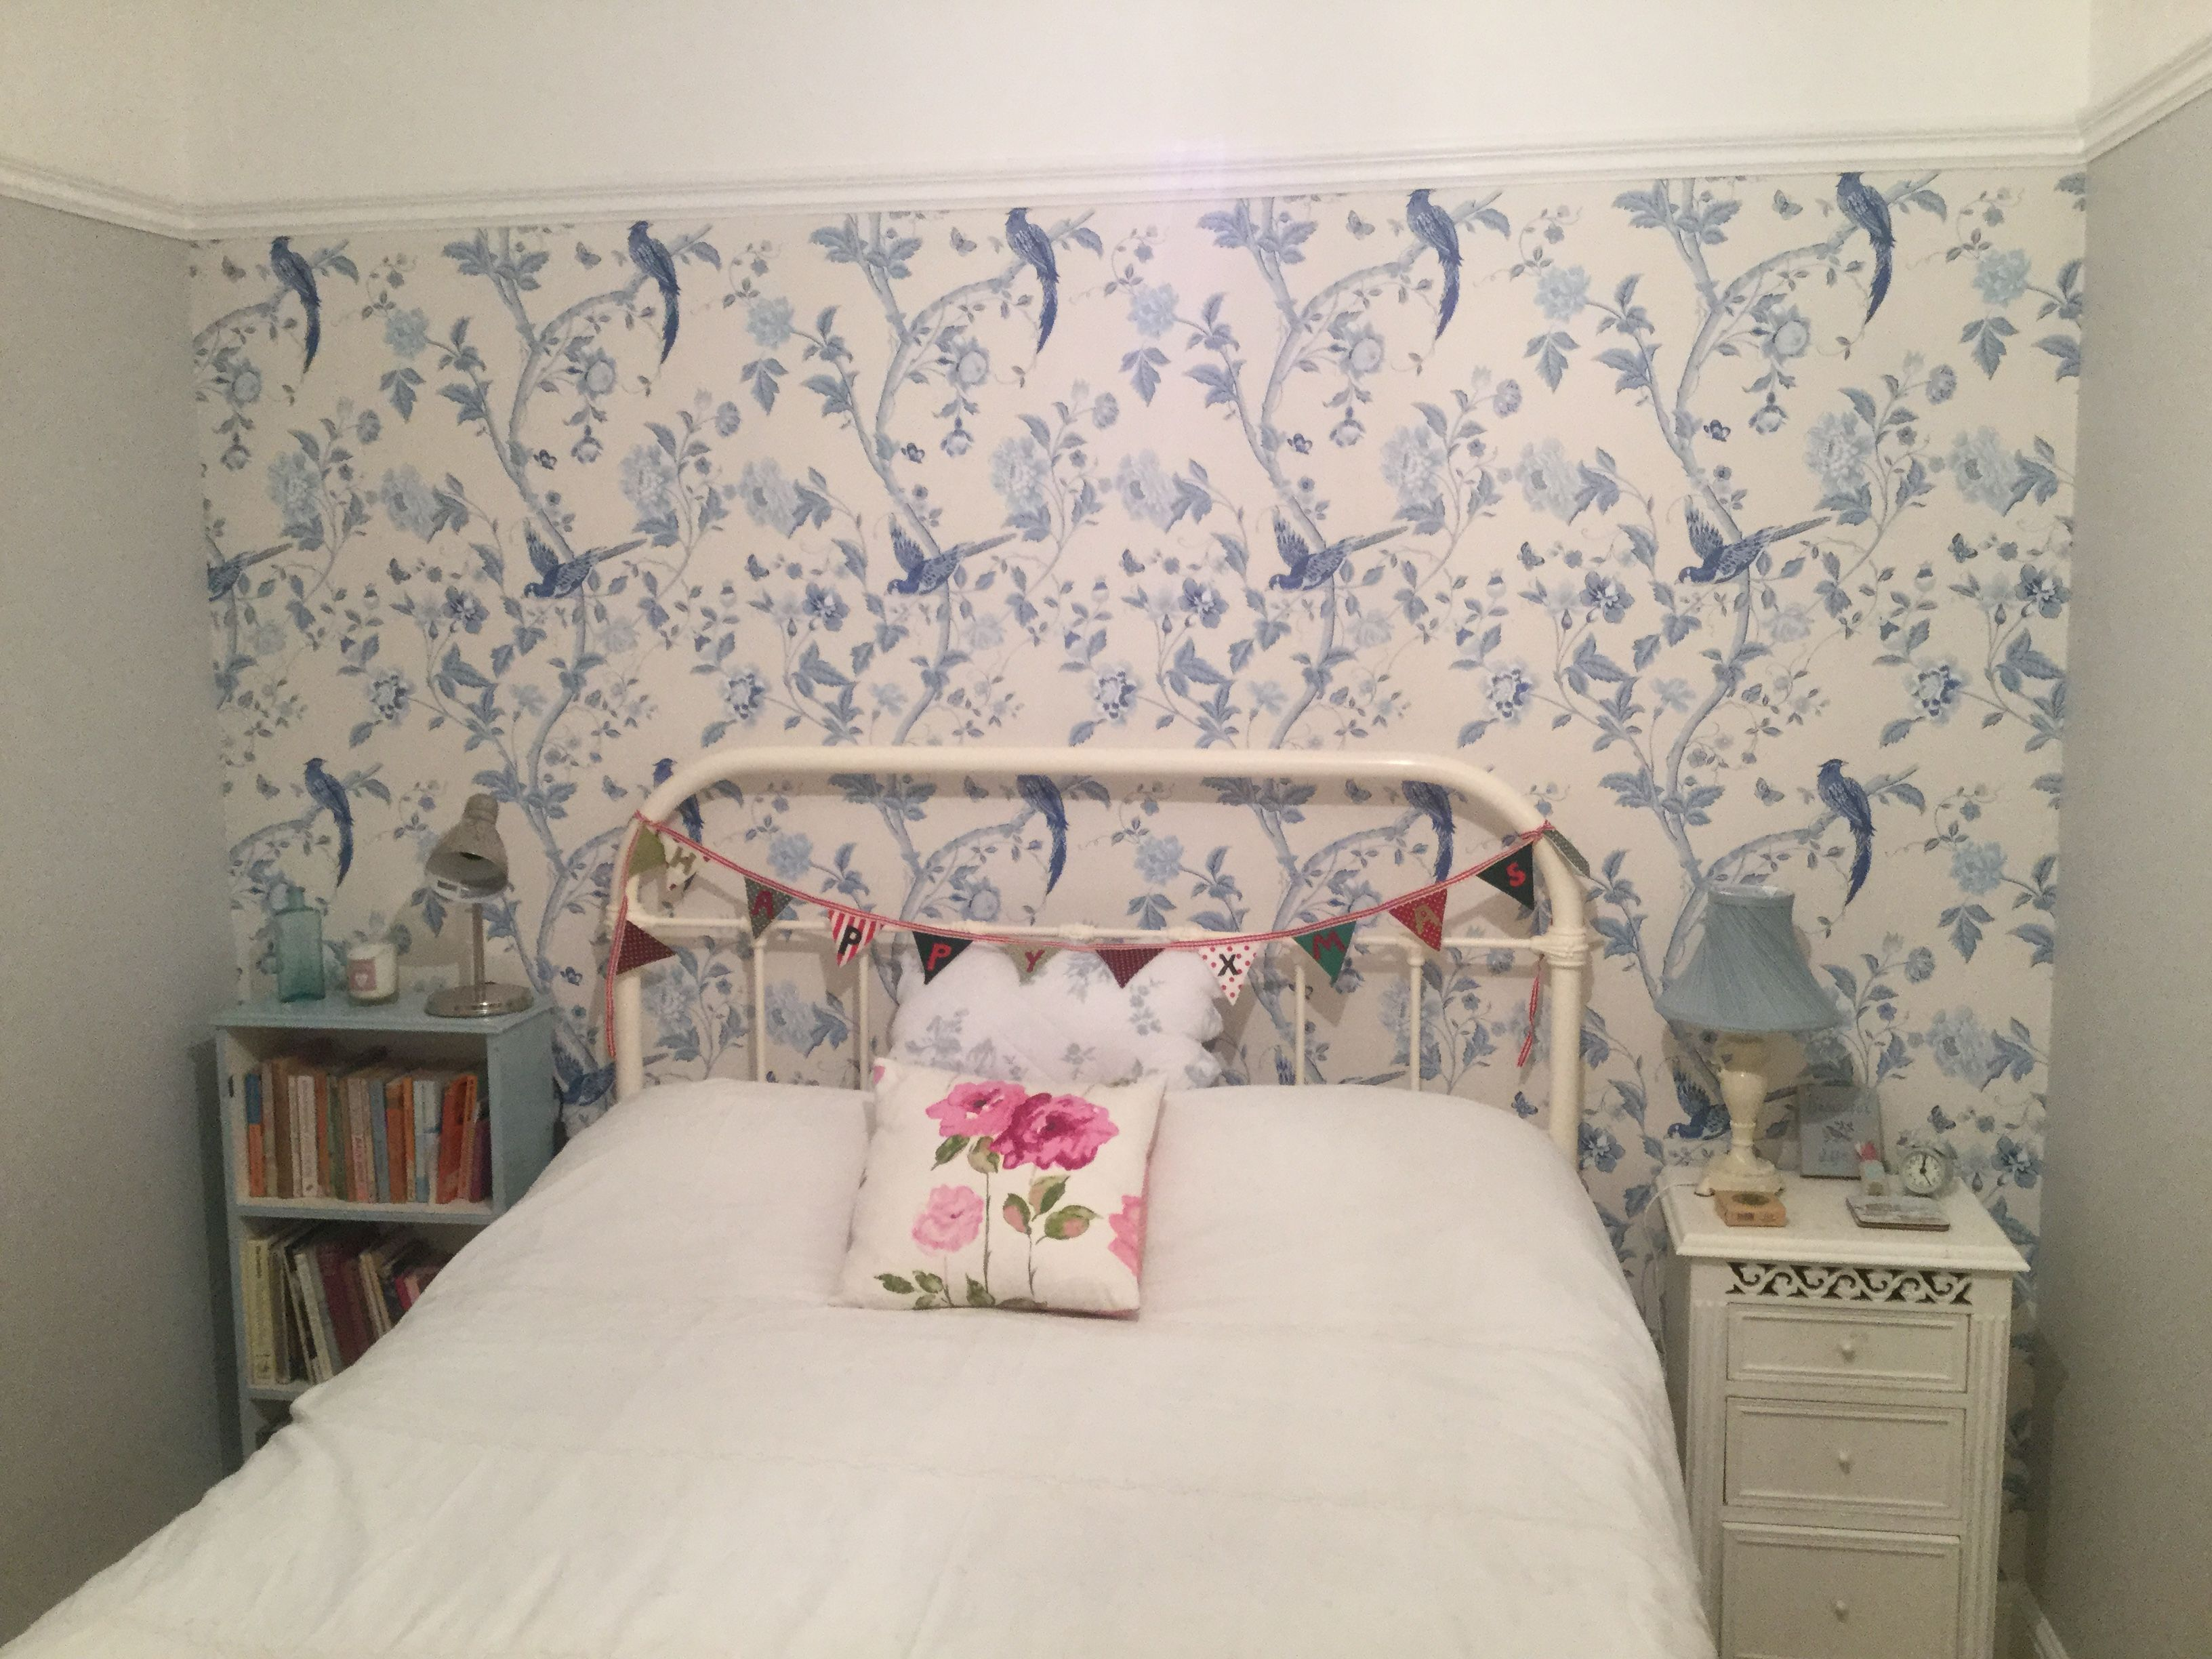 Bedroom Ideas Laura Ashley farrow and ball ammonite laura ashley summer palace royal blue